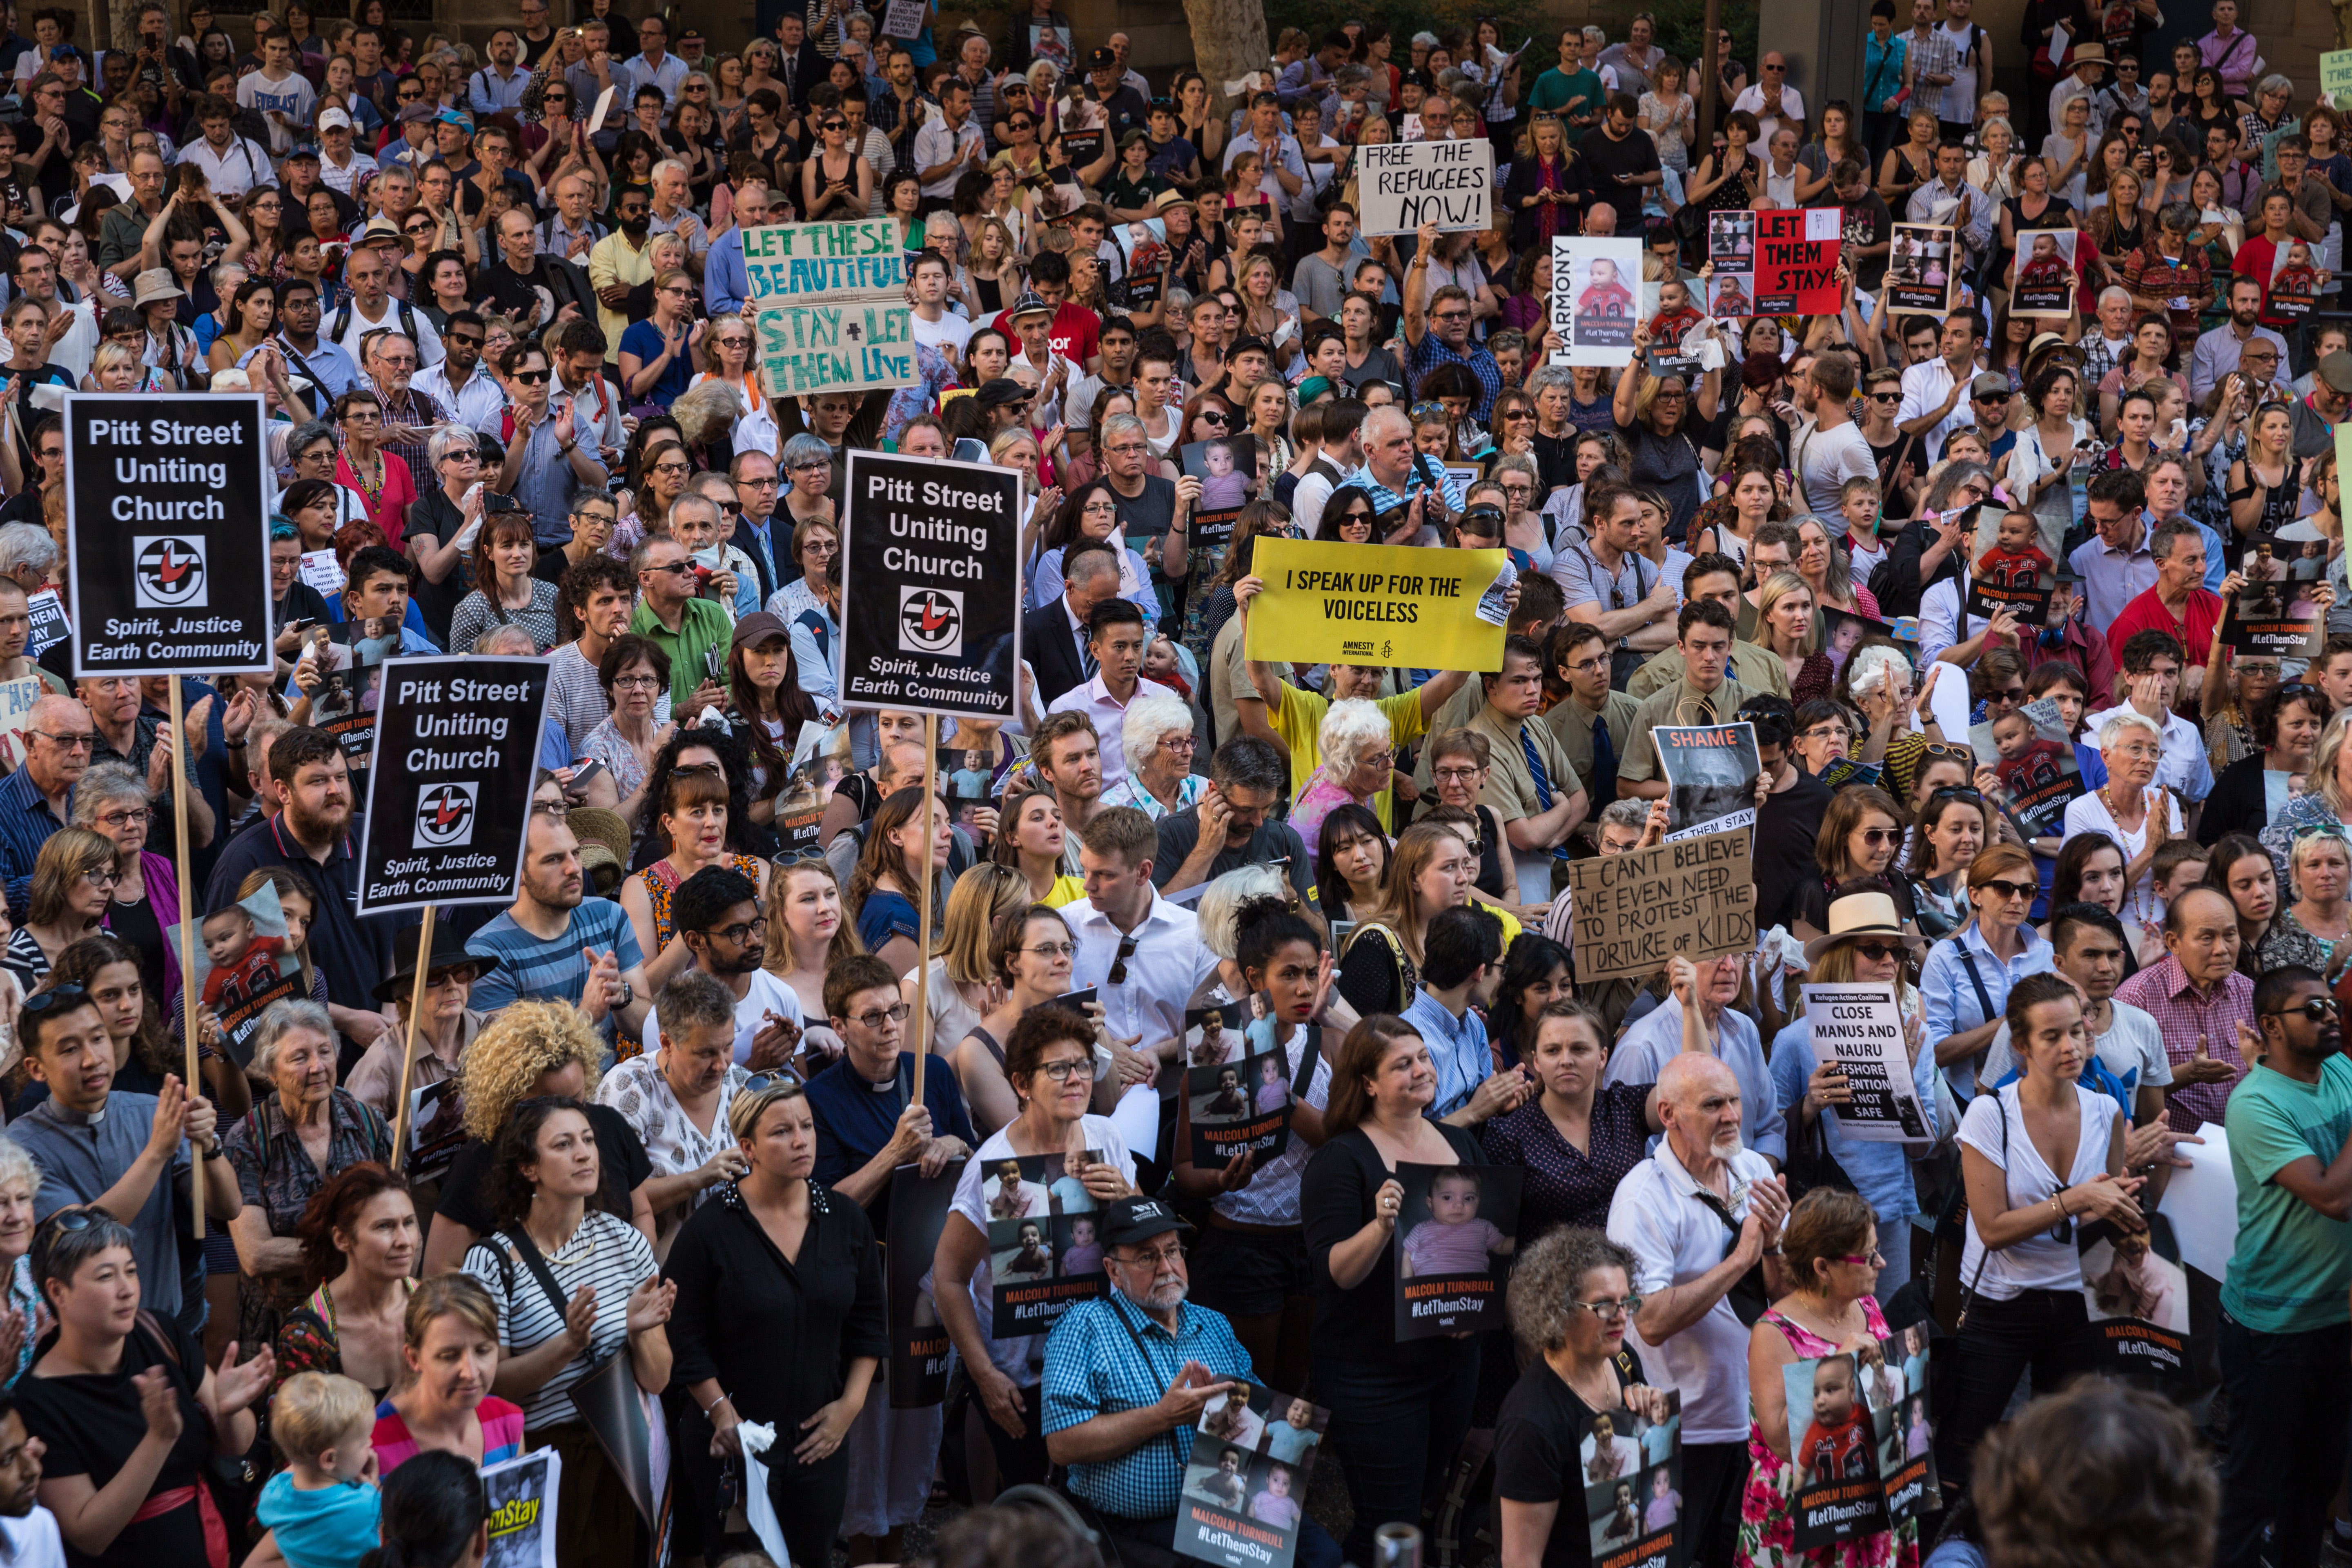 Protesters at Town Hall Square gathered to demonstrate against offshore detention, Feb. 08, 2016 in Sydney, Australia